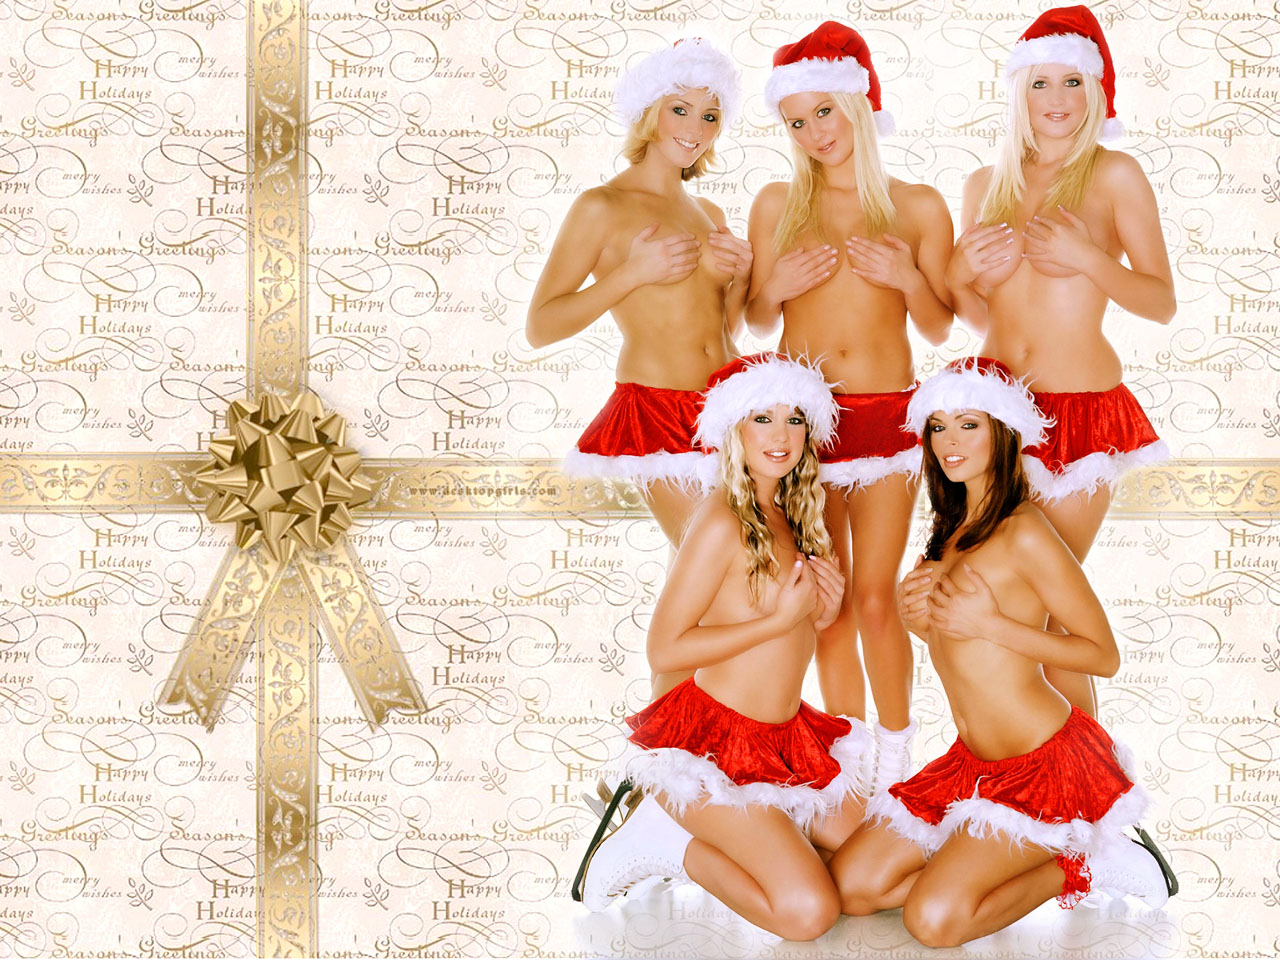 sexy christmas wallpapers. click for wallpaper sized,